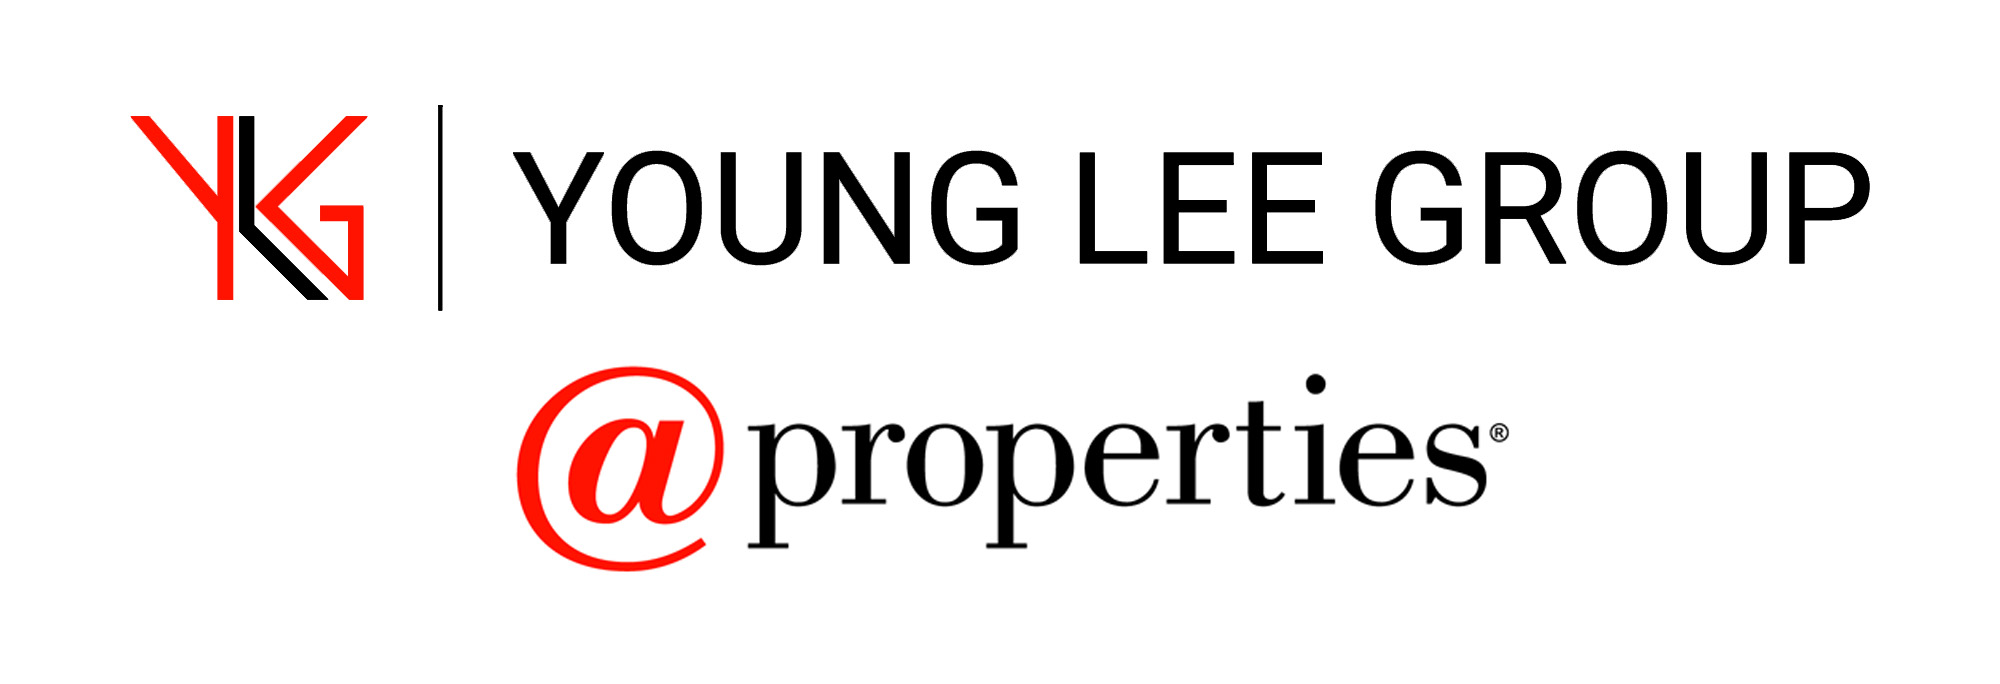 Young Lee Group with @Properties logo